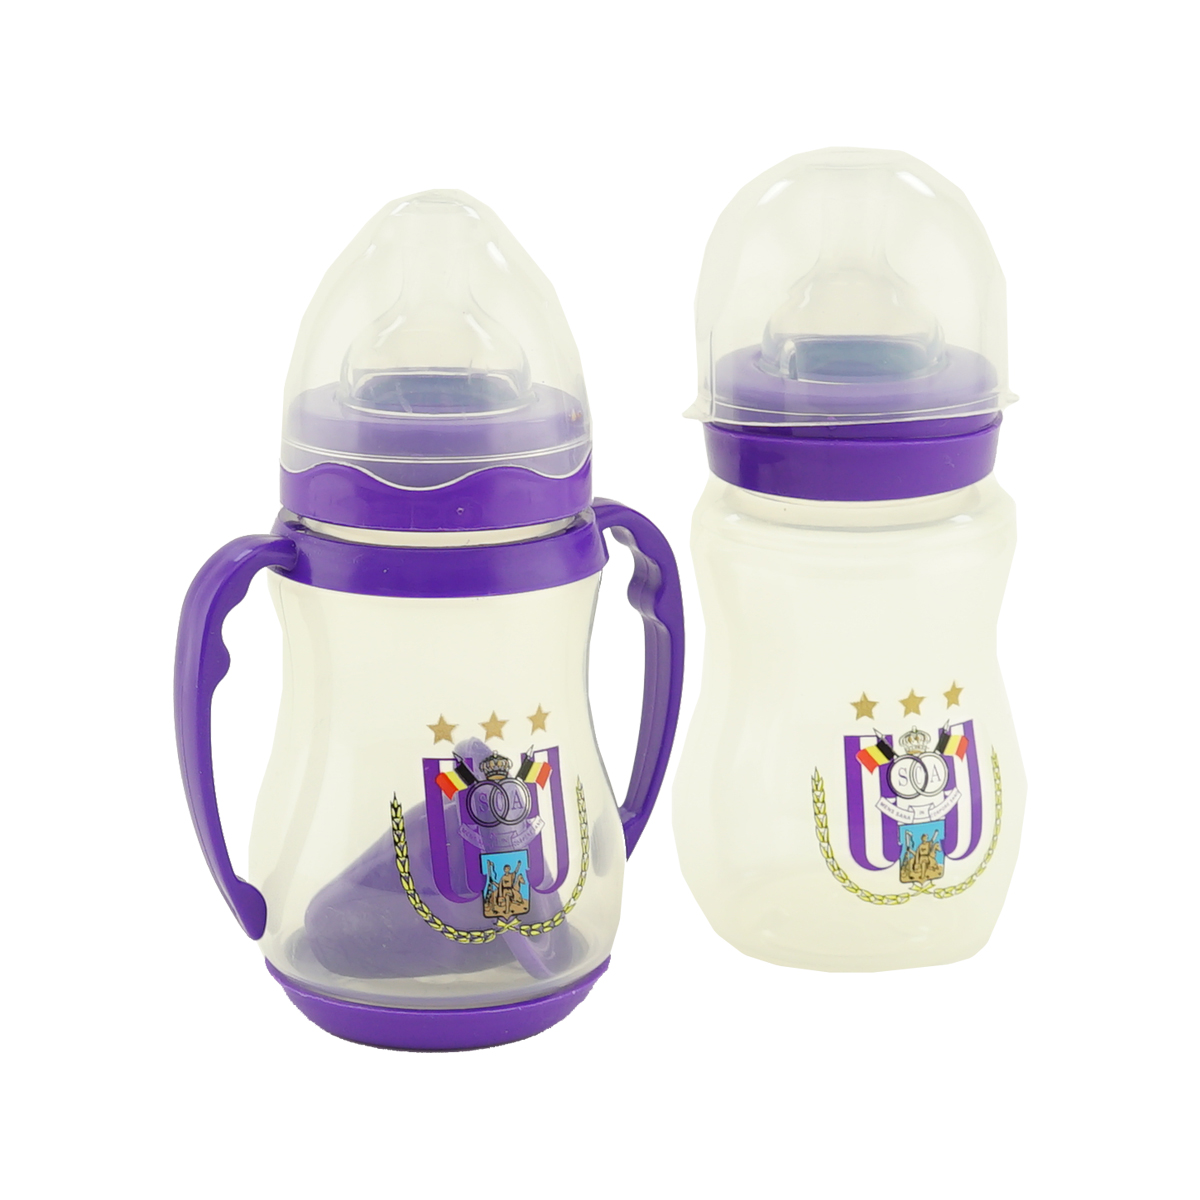 RSCA Baby Porridge Bootle And Drinking Cup Set